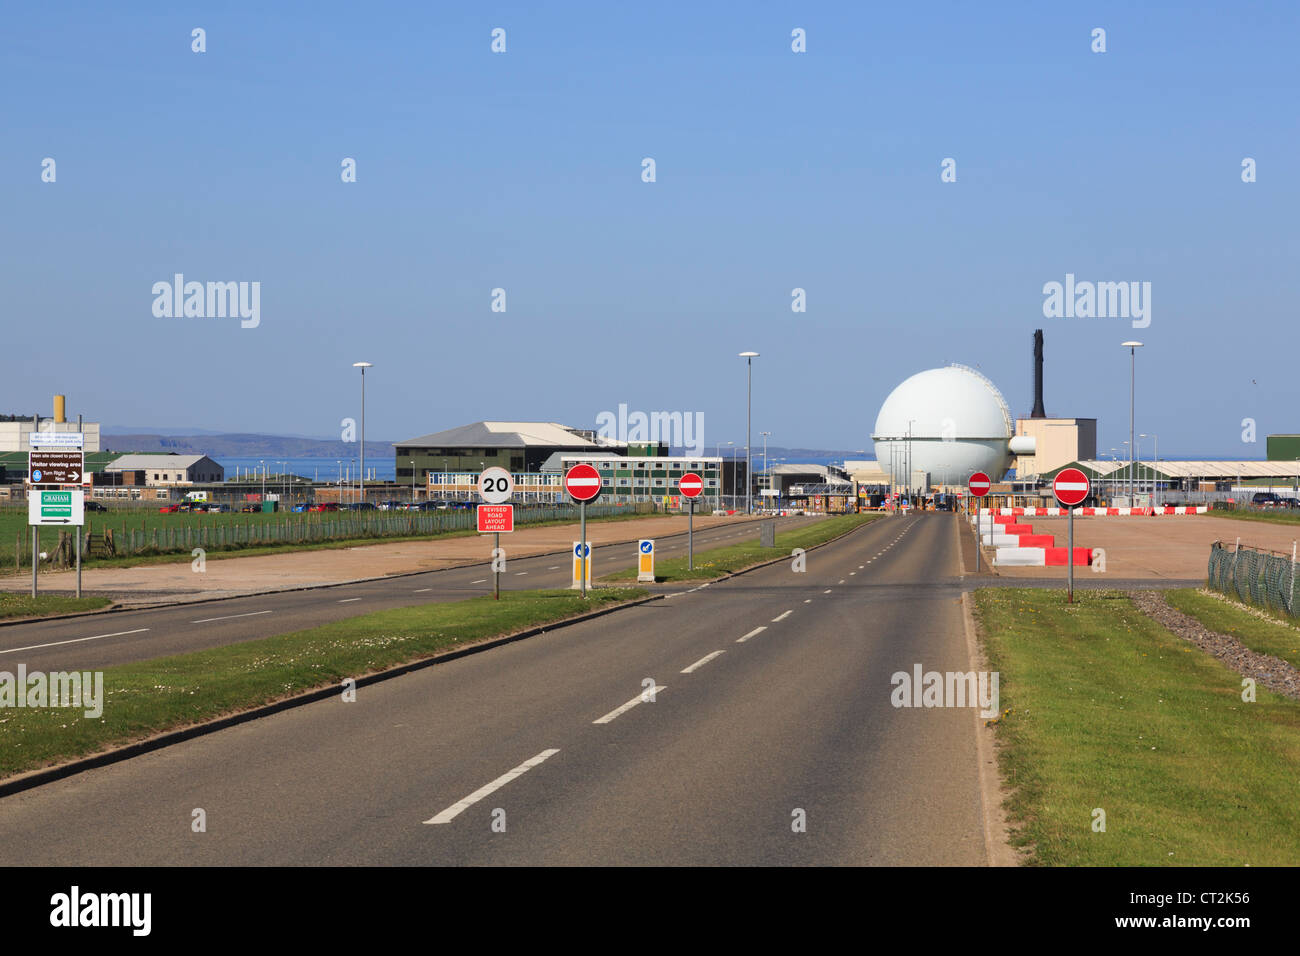 Dounreay nuclear power station atomic energy reactor and research establishment on north coast of Caithness Scotland - Stock Image